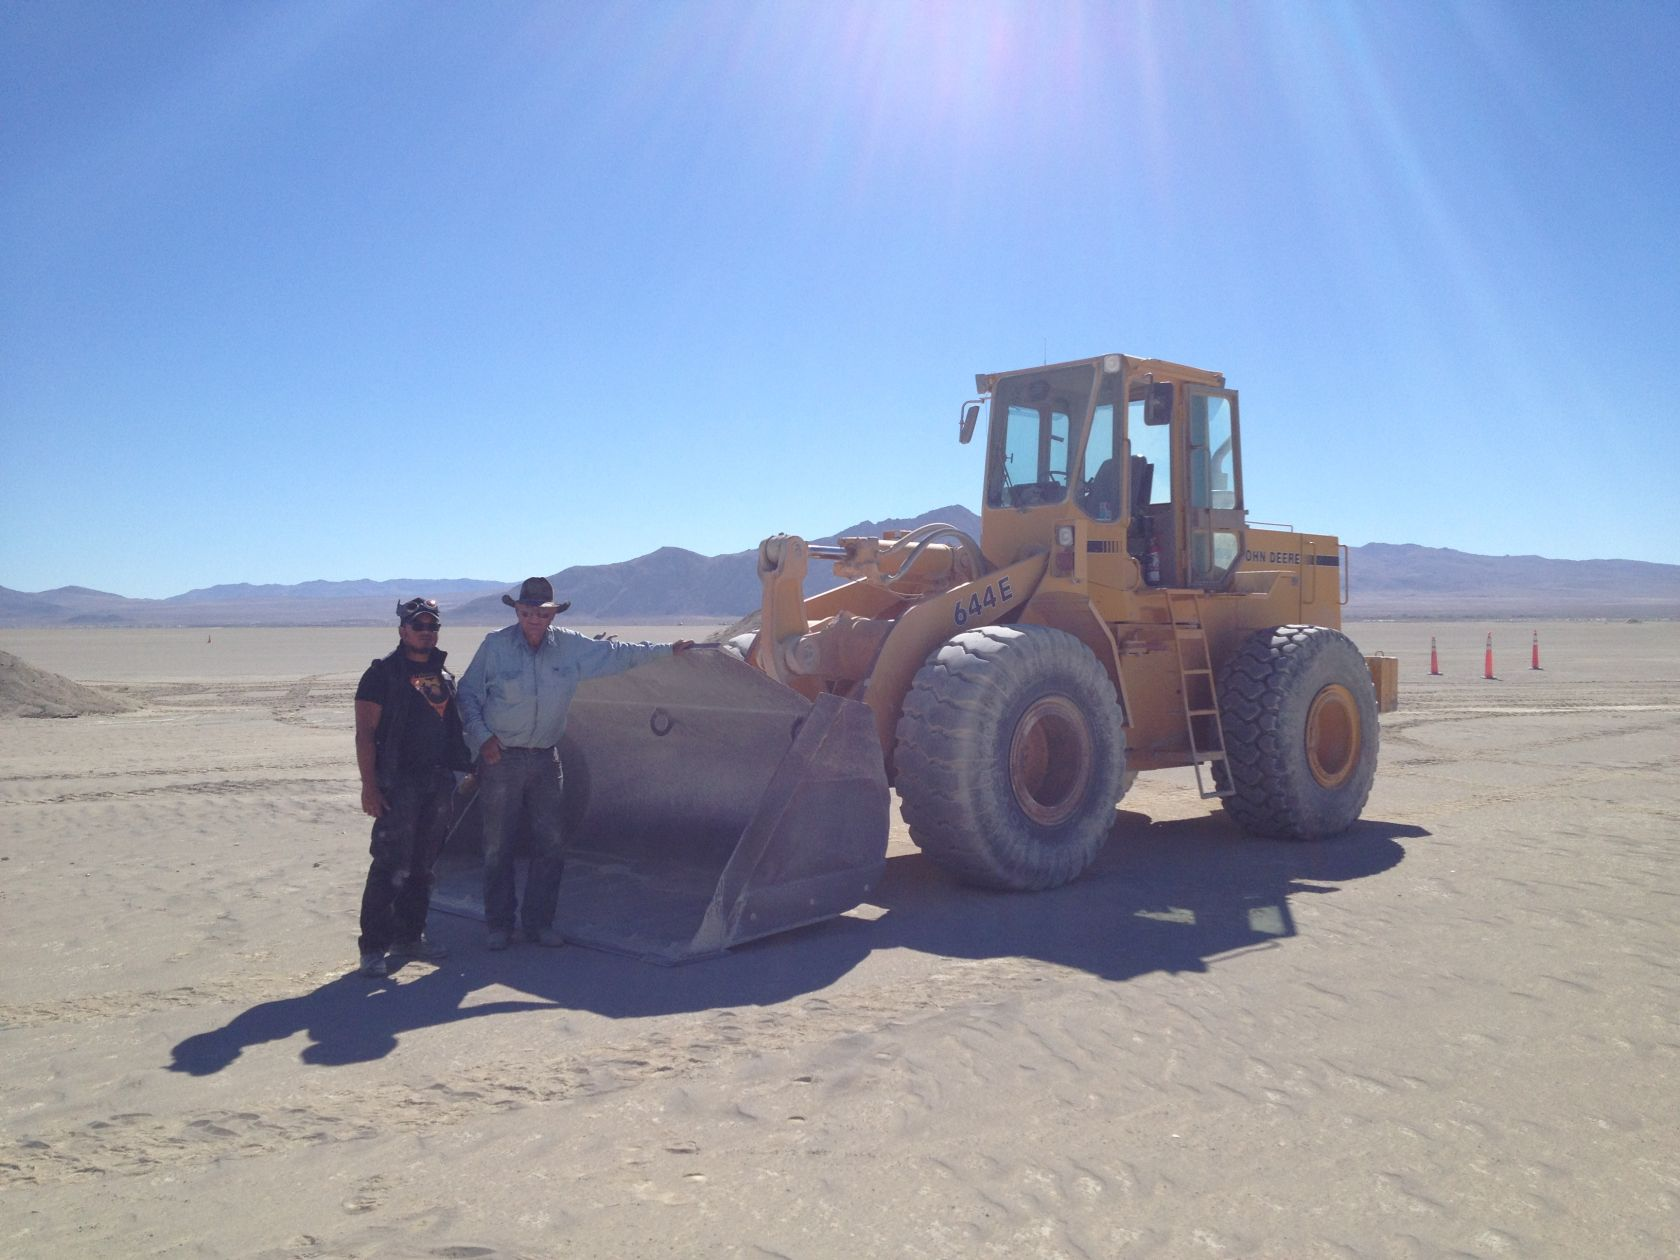 Stuart from Gerlach (standing on the right, with Resto boss D.A.) at the site of the Man Burn removes the decomosed granite that protects the playa surface from burn scarring.